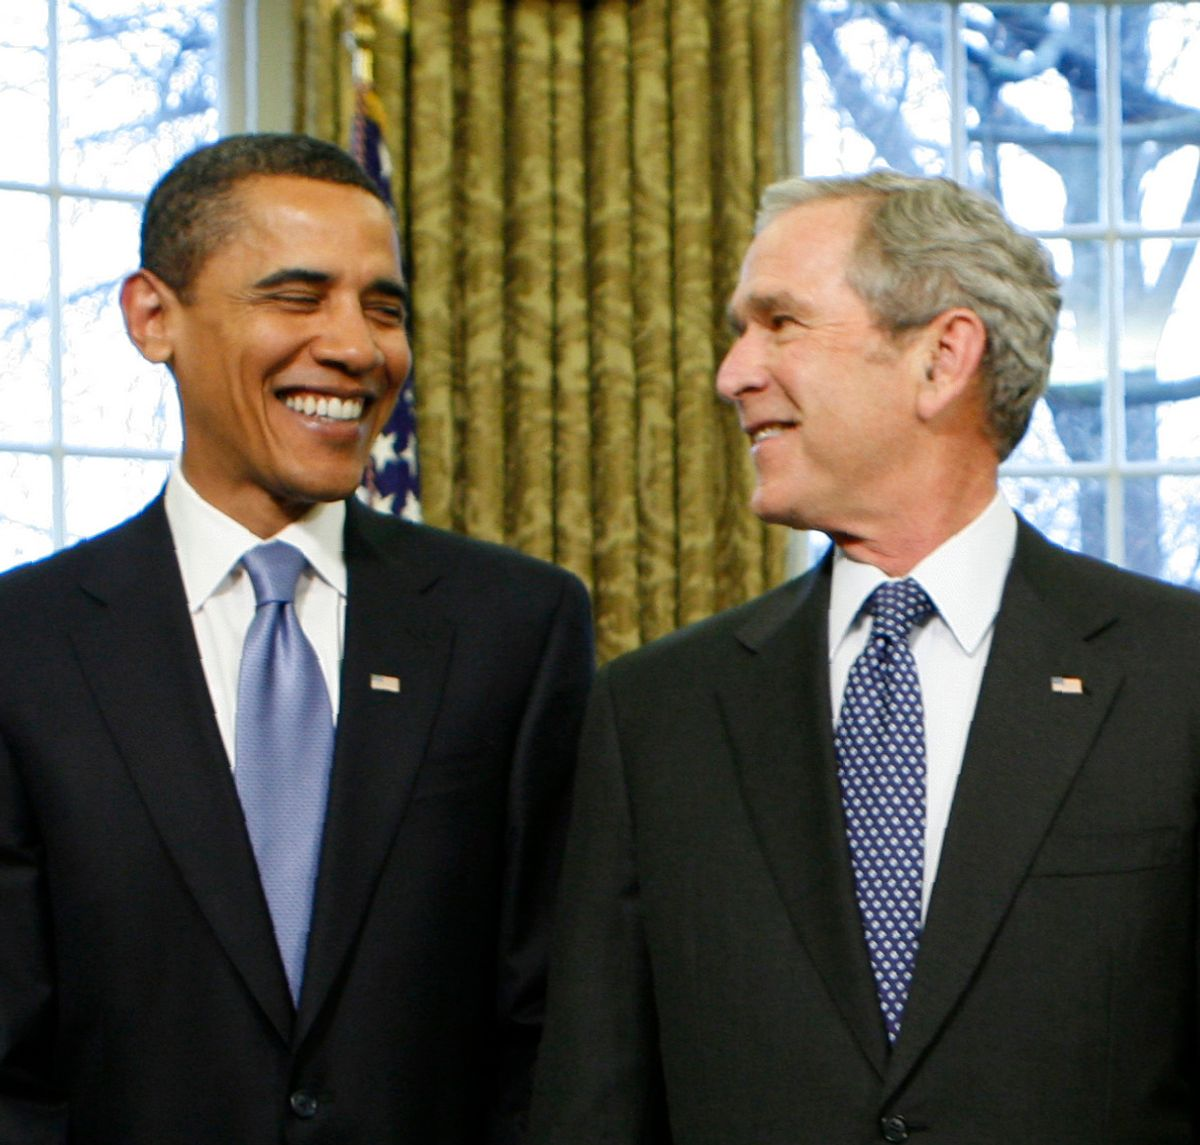 U.S. President George W. Bush looks at President-elect Barack Obama (L), as former President Bill Clinton (R) stands by his side during a meeting in the Oval Office of the White House in Washington January 7, 2009.    REUTERS/Kevin Lamarque   (UNITED STATES)  (© Kevin Lamarque / Reuters)